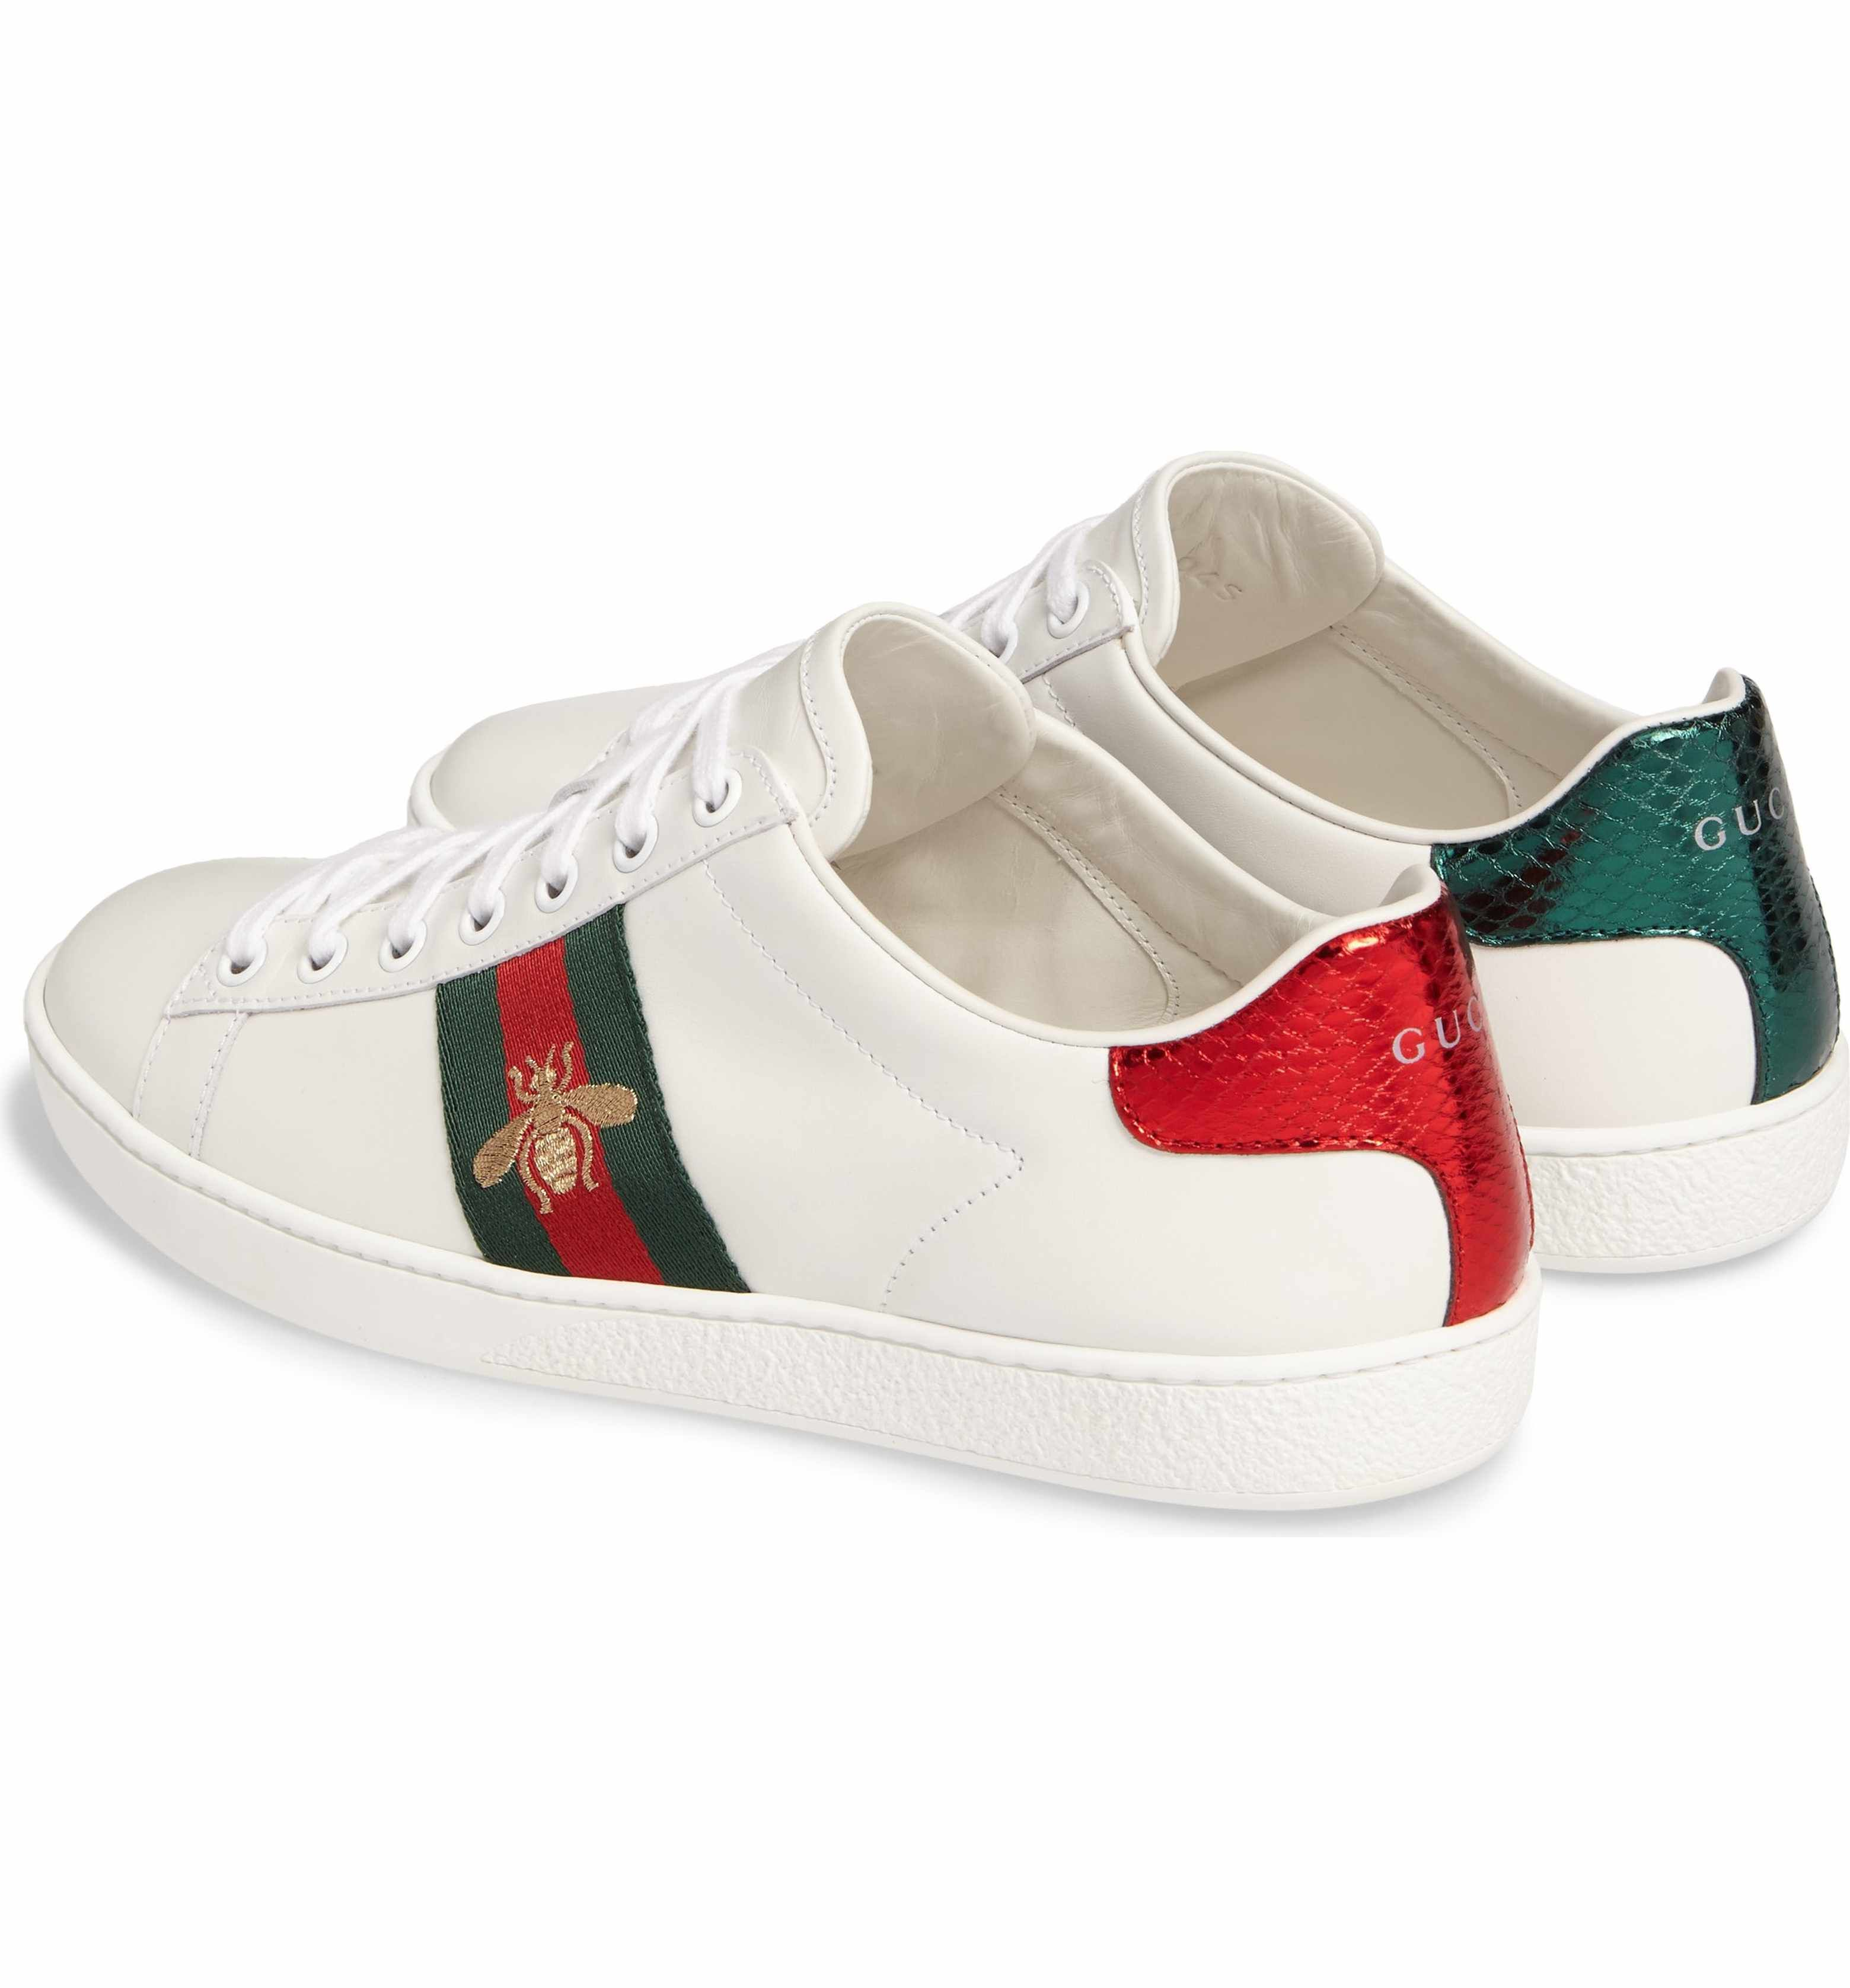 Sneakers, Womens sneakers, Gucci